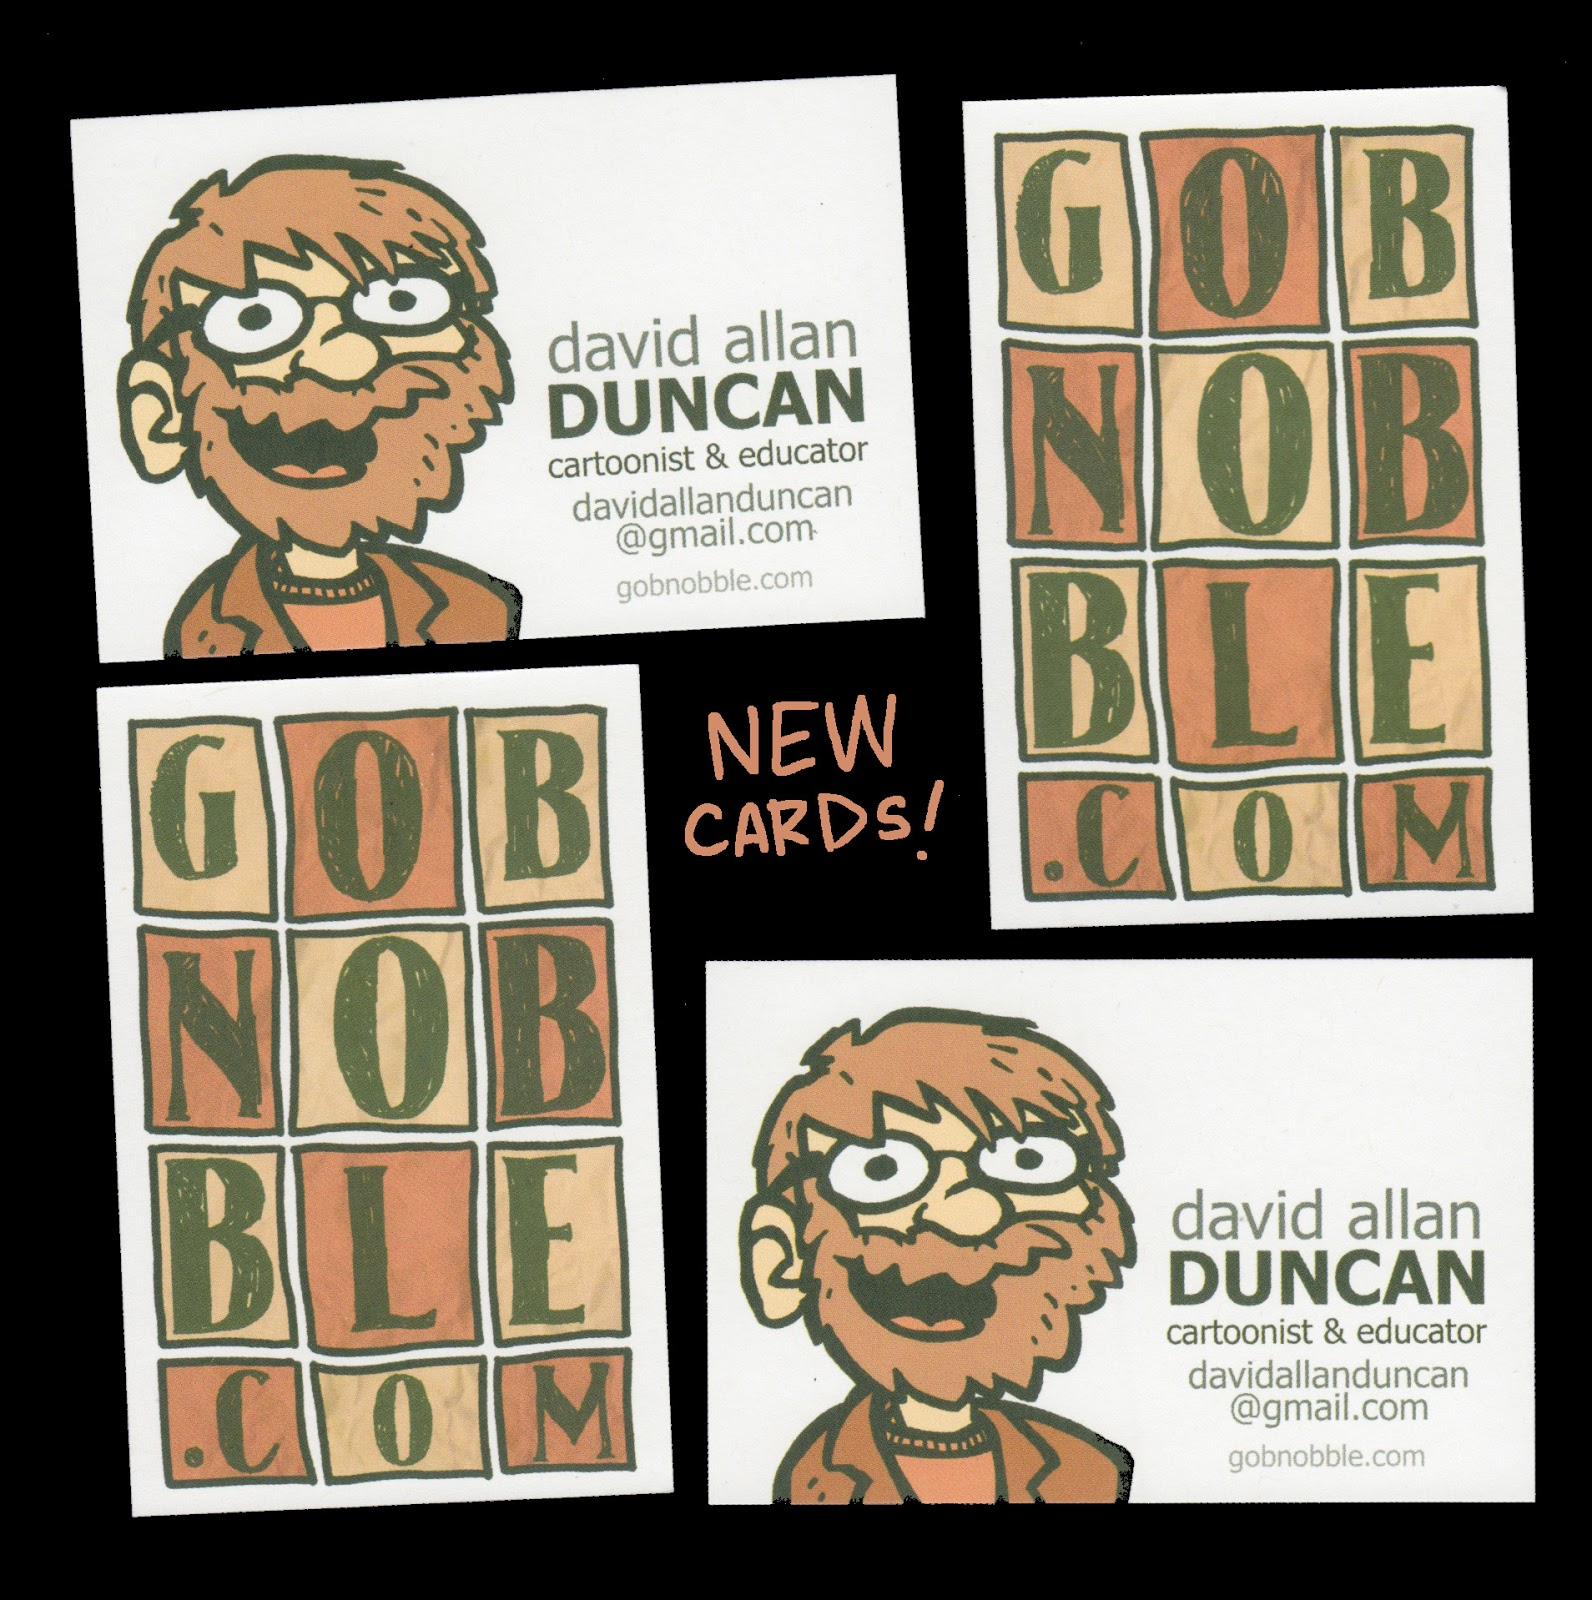 Gobnobble the comic work of david allan duncan new card yo i got some new business cards printed up the older ones were too old and i didnt like them i have scad business cards too but they arent fun at all colourmoves